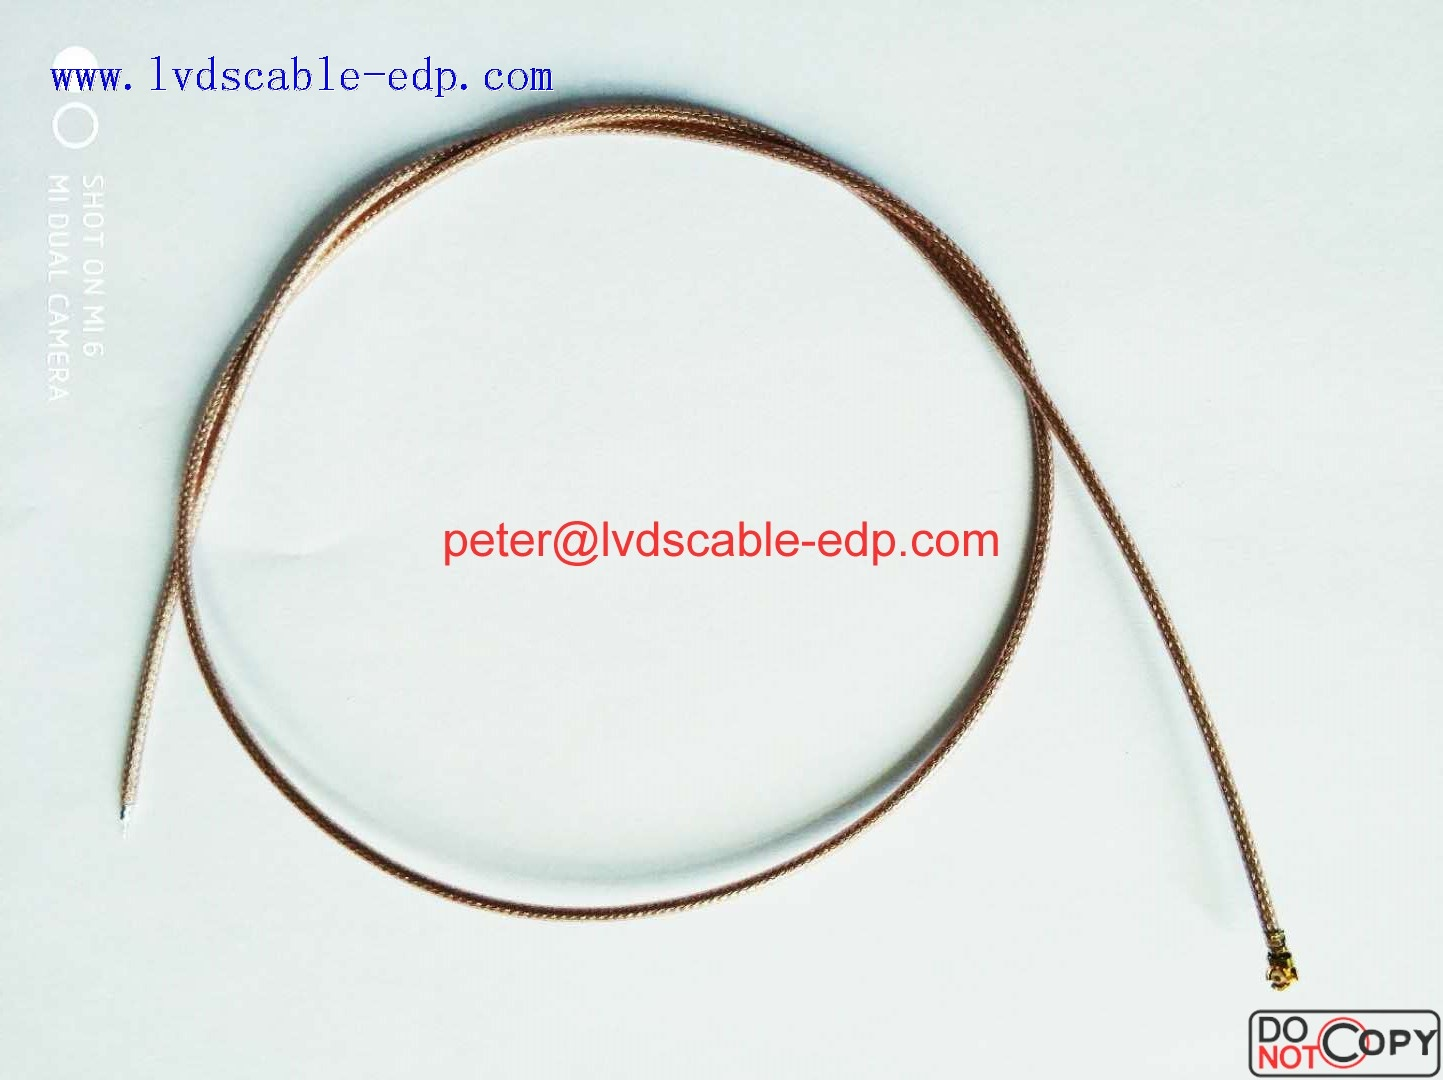 IPEX 20278-101R-18  RG178 RF CABLE